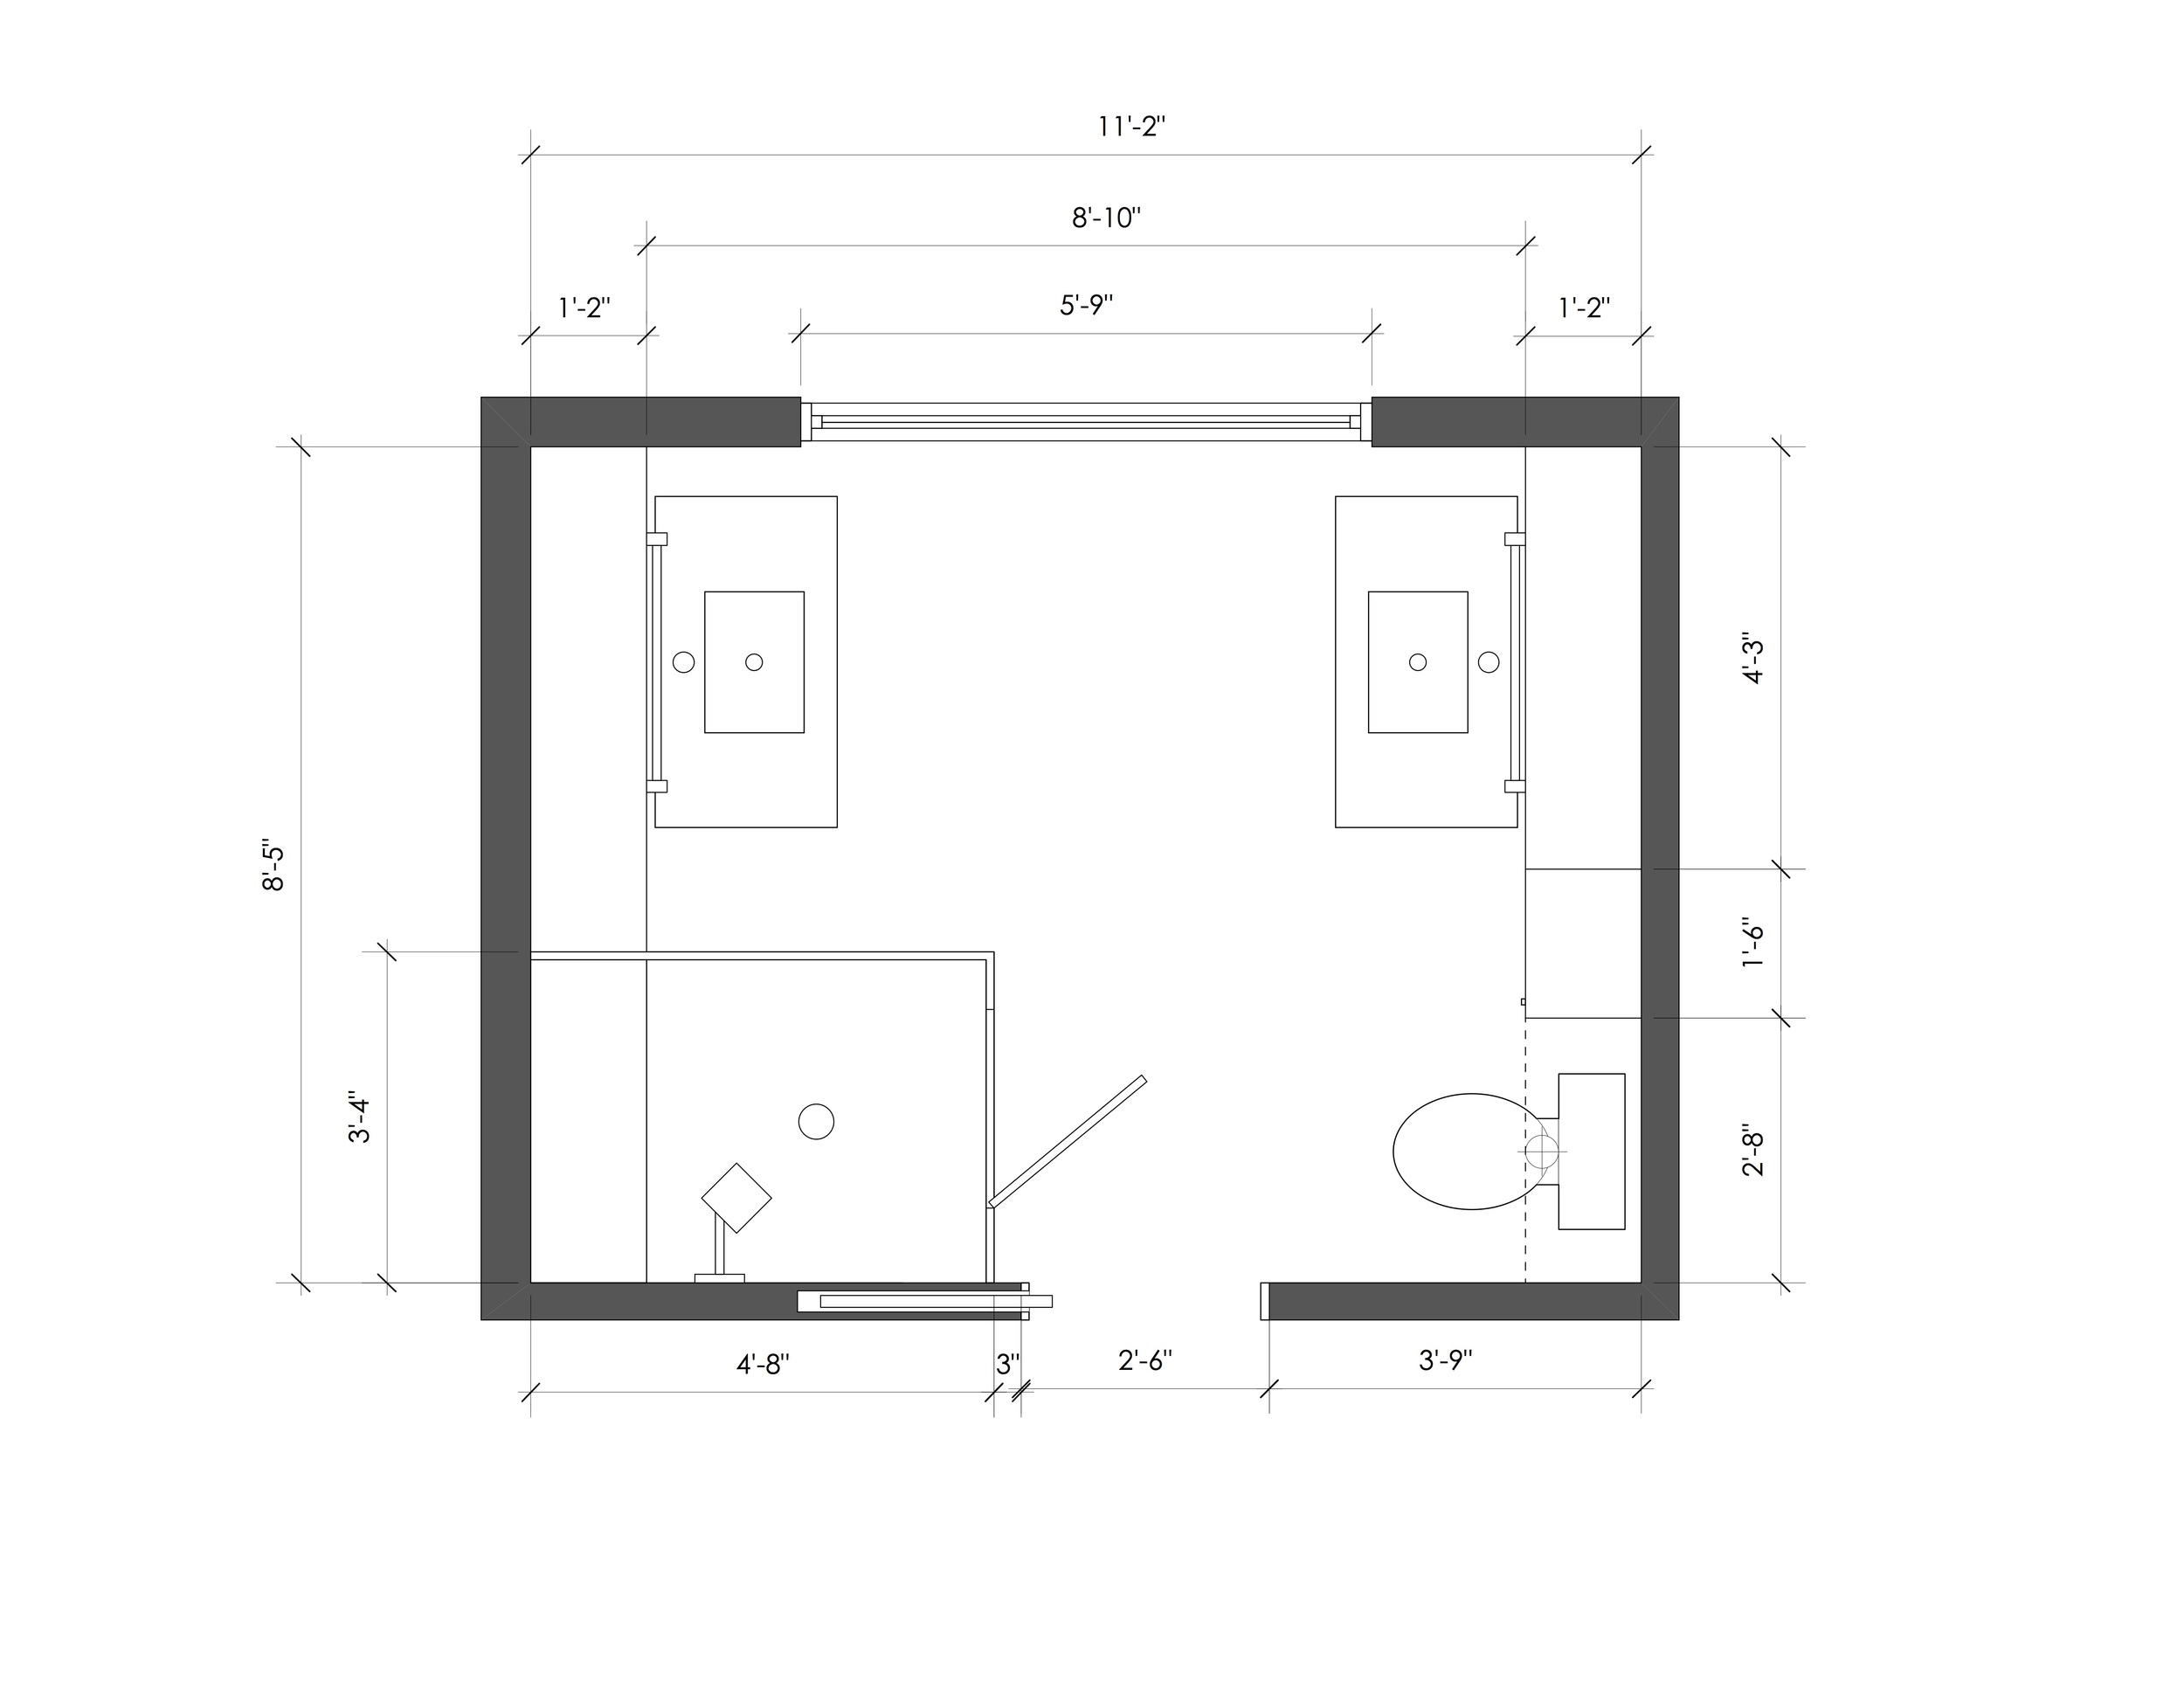 Top/Plan View Bathroom Renovation